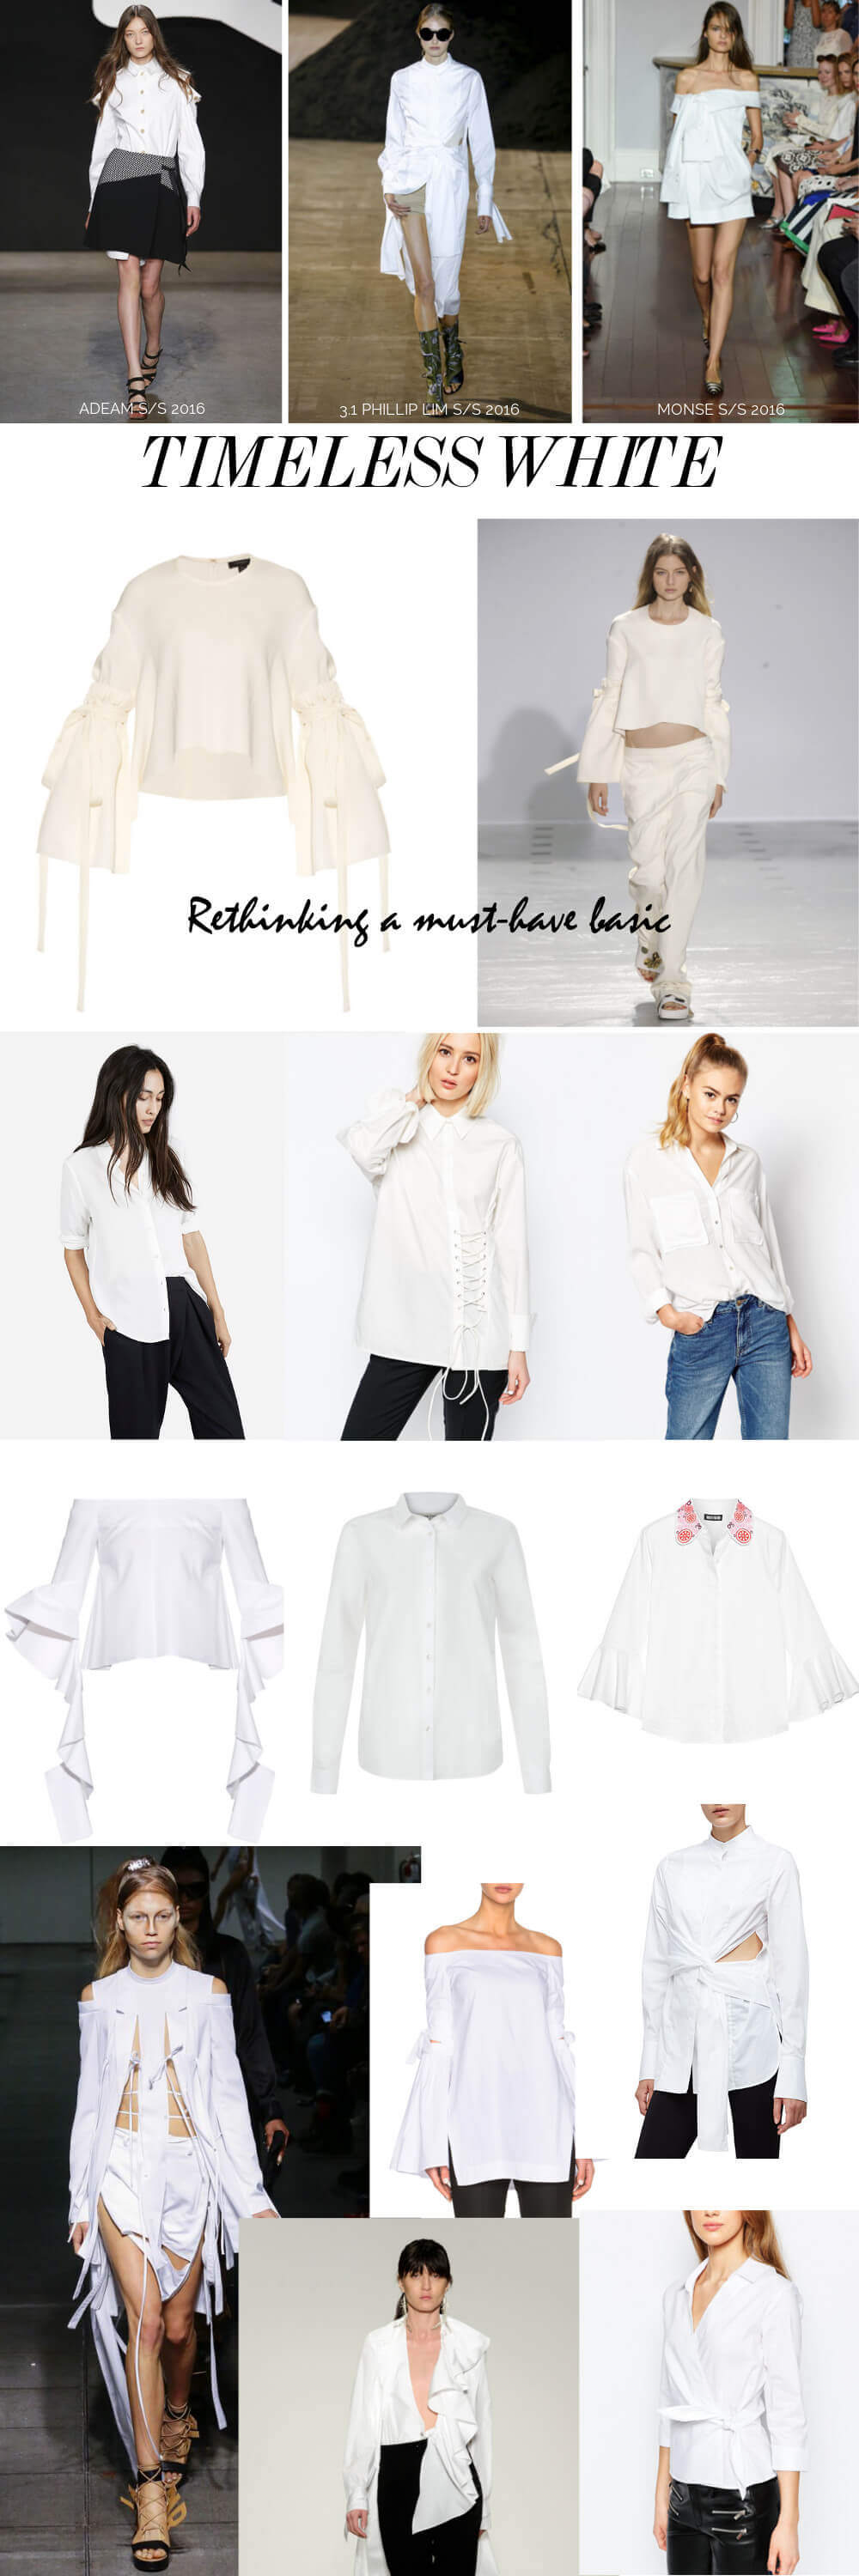 white shirts to inspire | Shop now